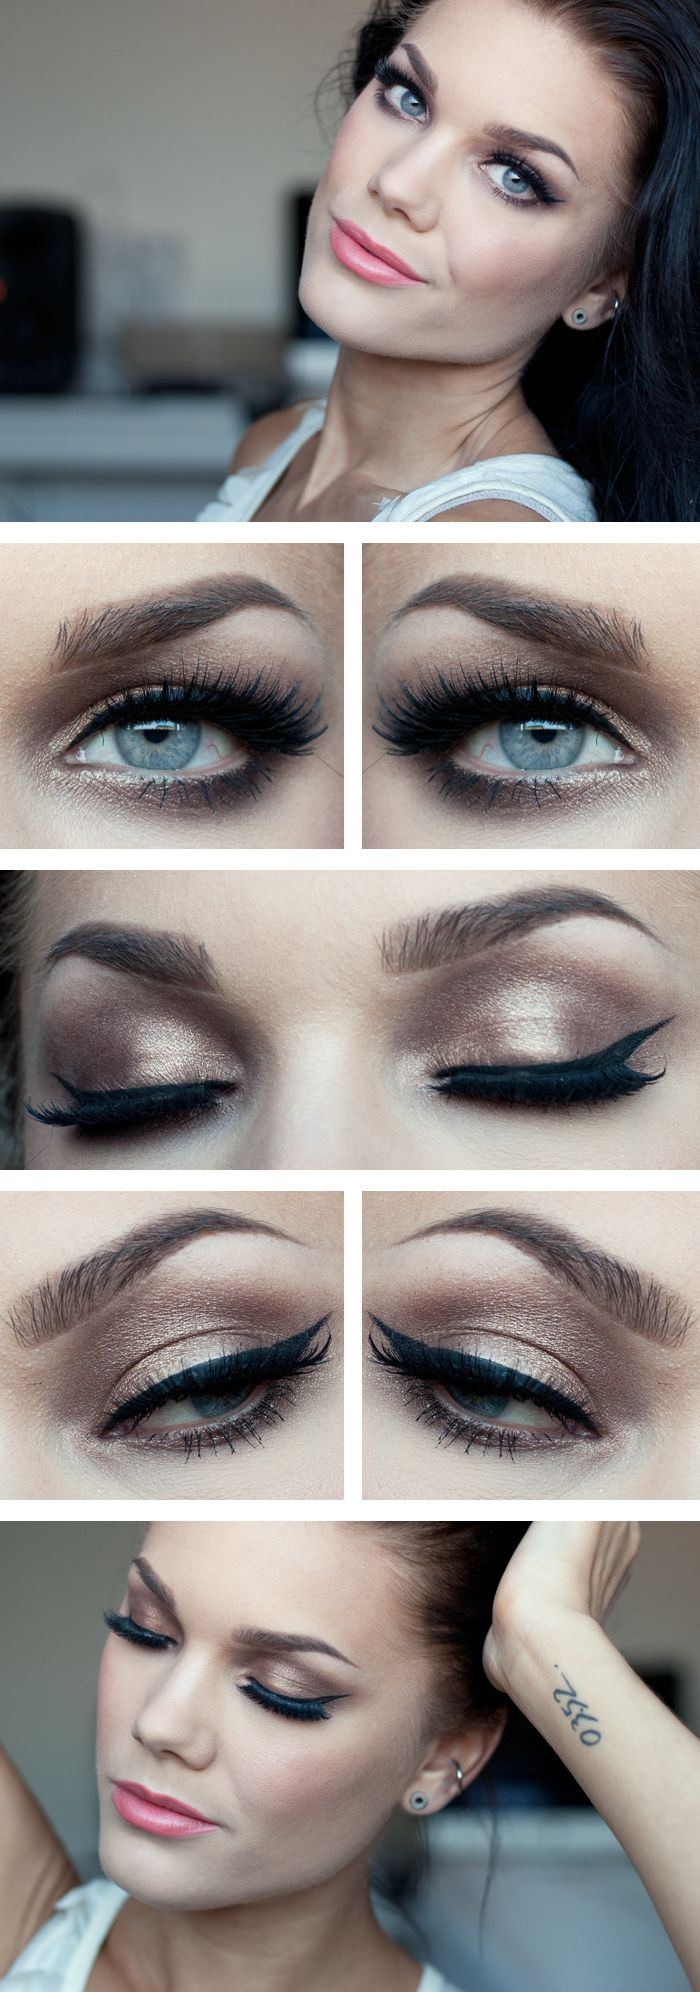 """Today's Look : """"Golden Prom Makeup"""" -Linda Hallberg ( a gorgeous golden eye look, very simple, yet sophisticated, lots of lashes, a beautiful peachy pink lip. Perfect look for prom or spring wedding) 05/17/13"""